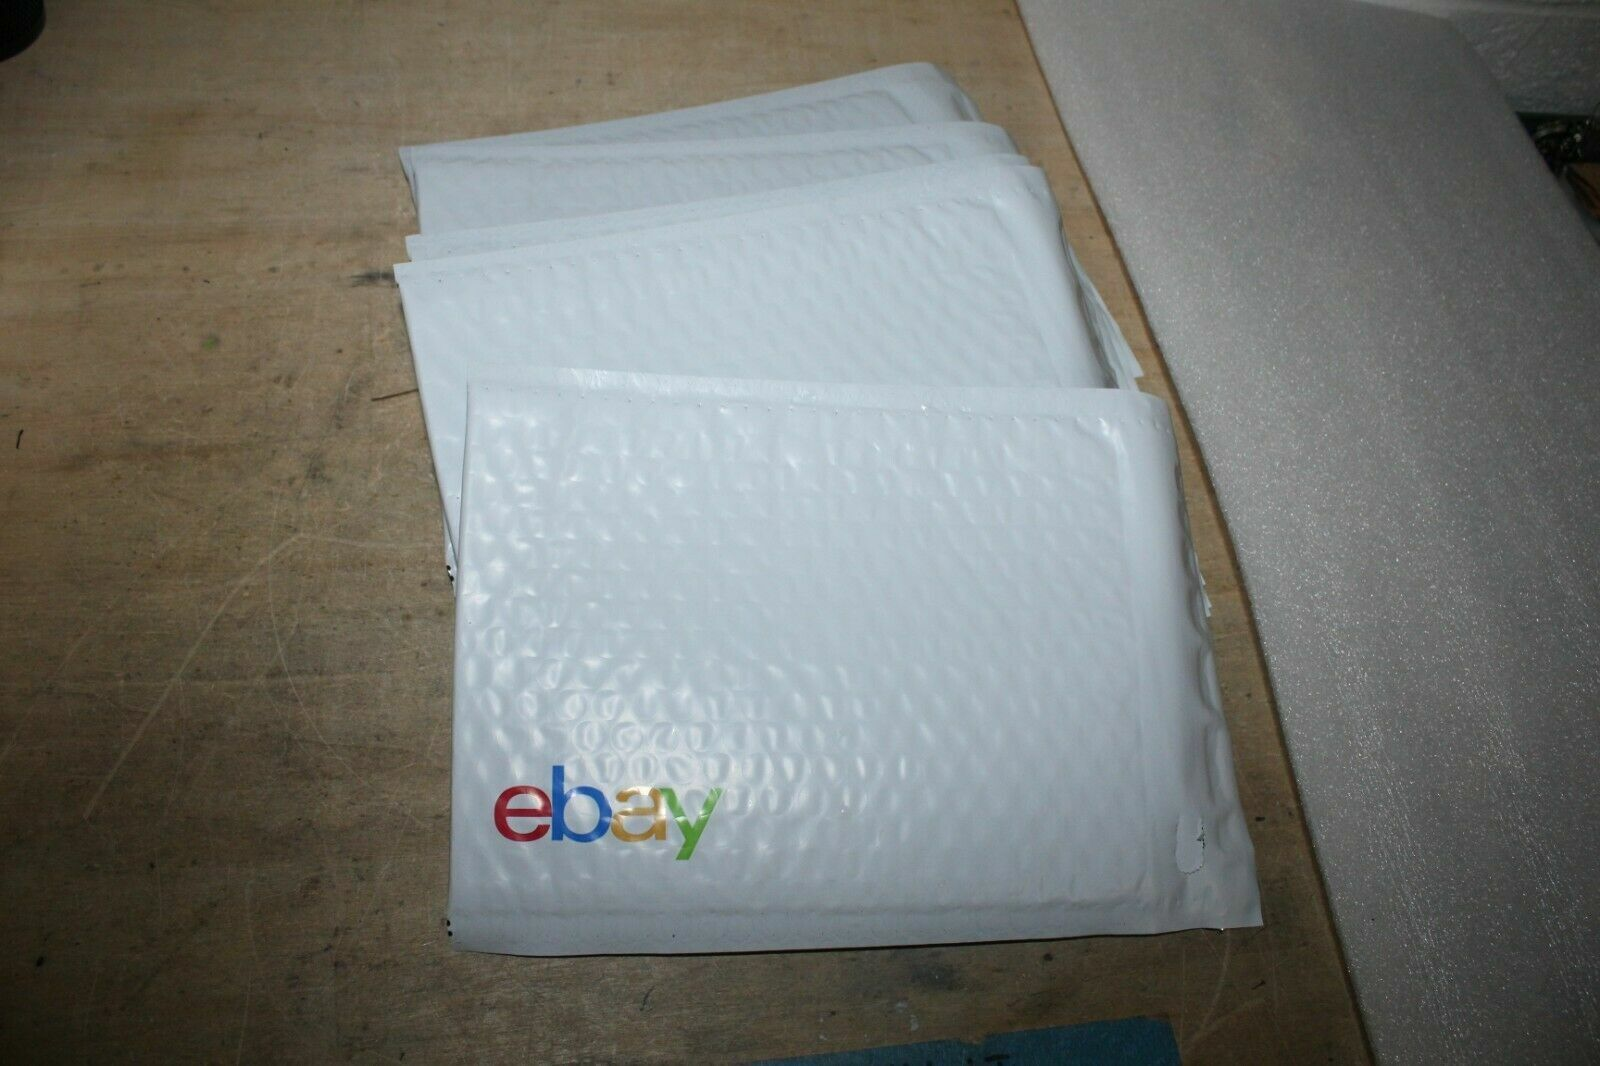 Lot Of Five x5 EBay-Branded Padded Airjacket Multi-Color Print 6.5 X 9.25  - $6.75